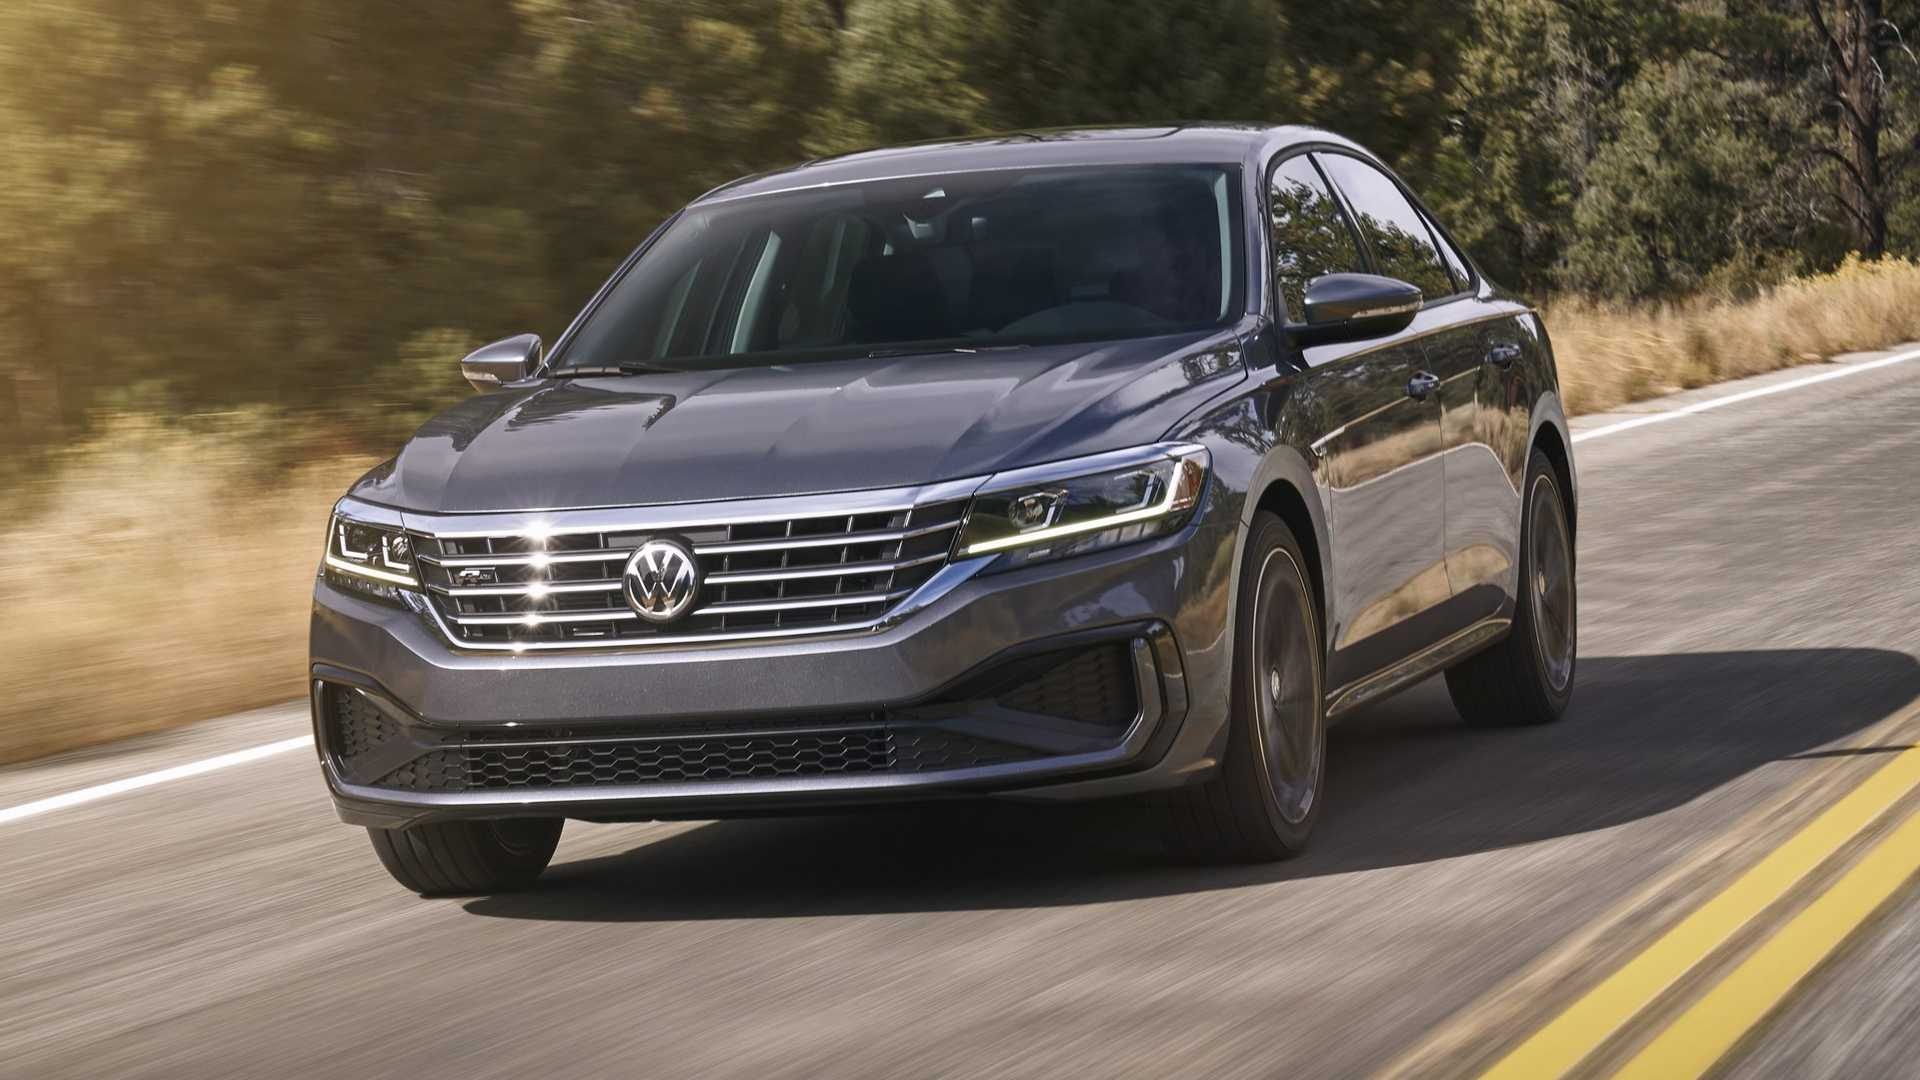 2020 Vw Passat Concept and Review